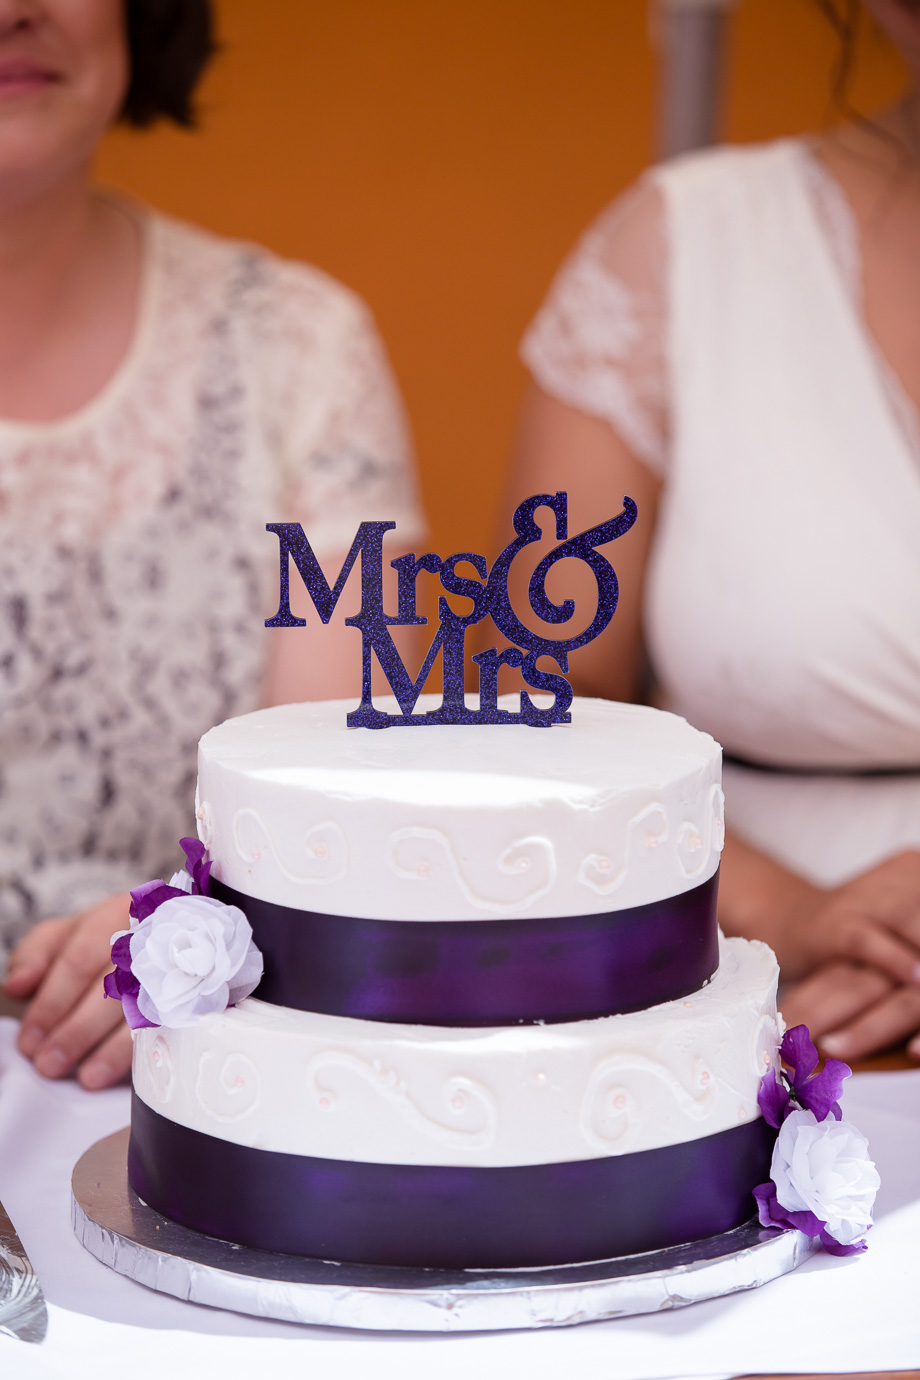 Cute Mrs and Mrs cake topper for the beautiful lesbian wedding!